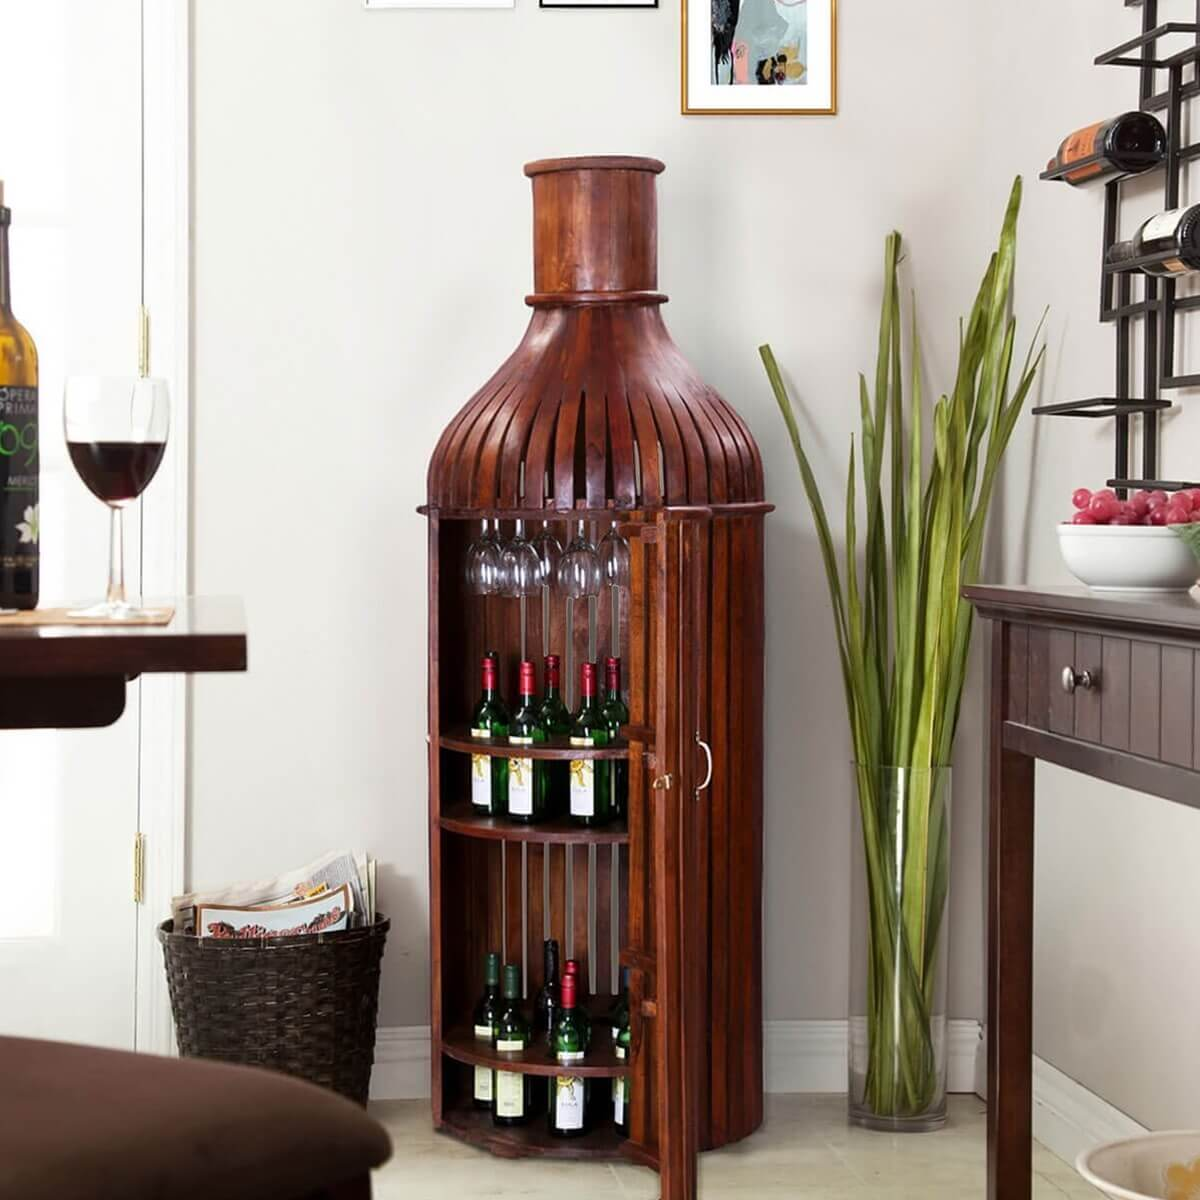 bordeaux handcrafted solid wood wine bottle storage bar cabinet. Black Bedroom Furniture Sets. Home Design Ideas